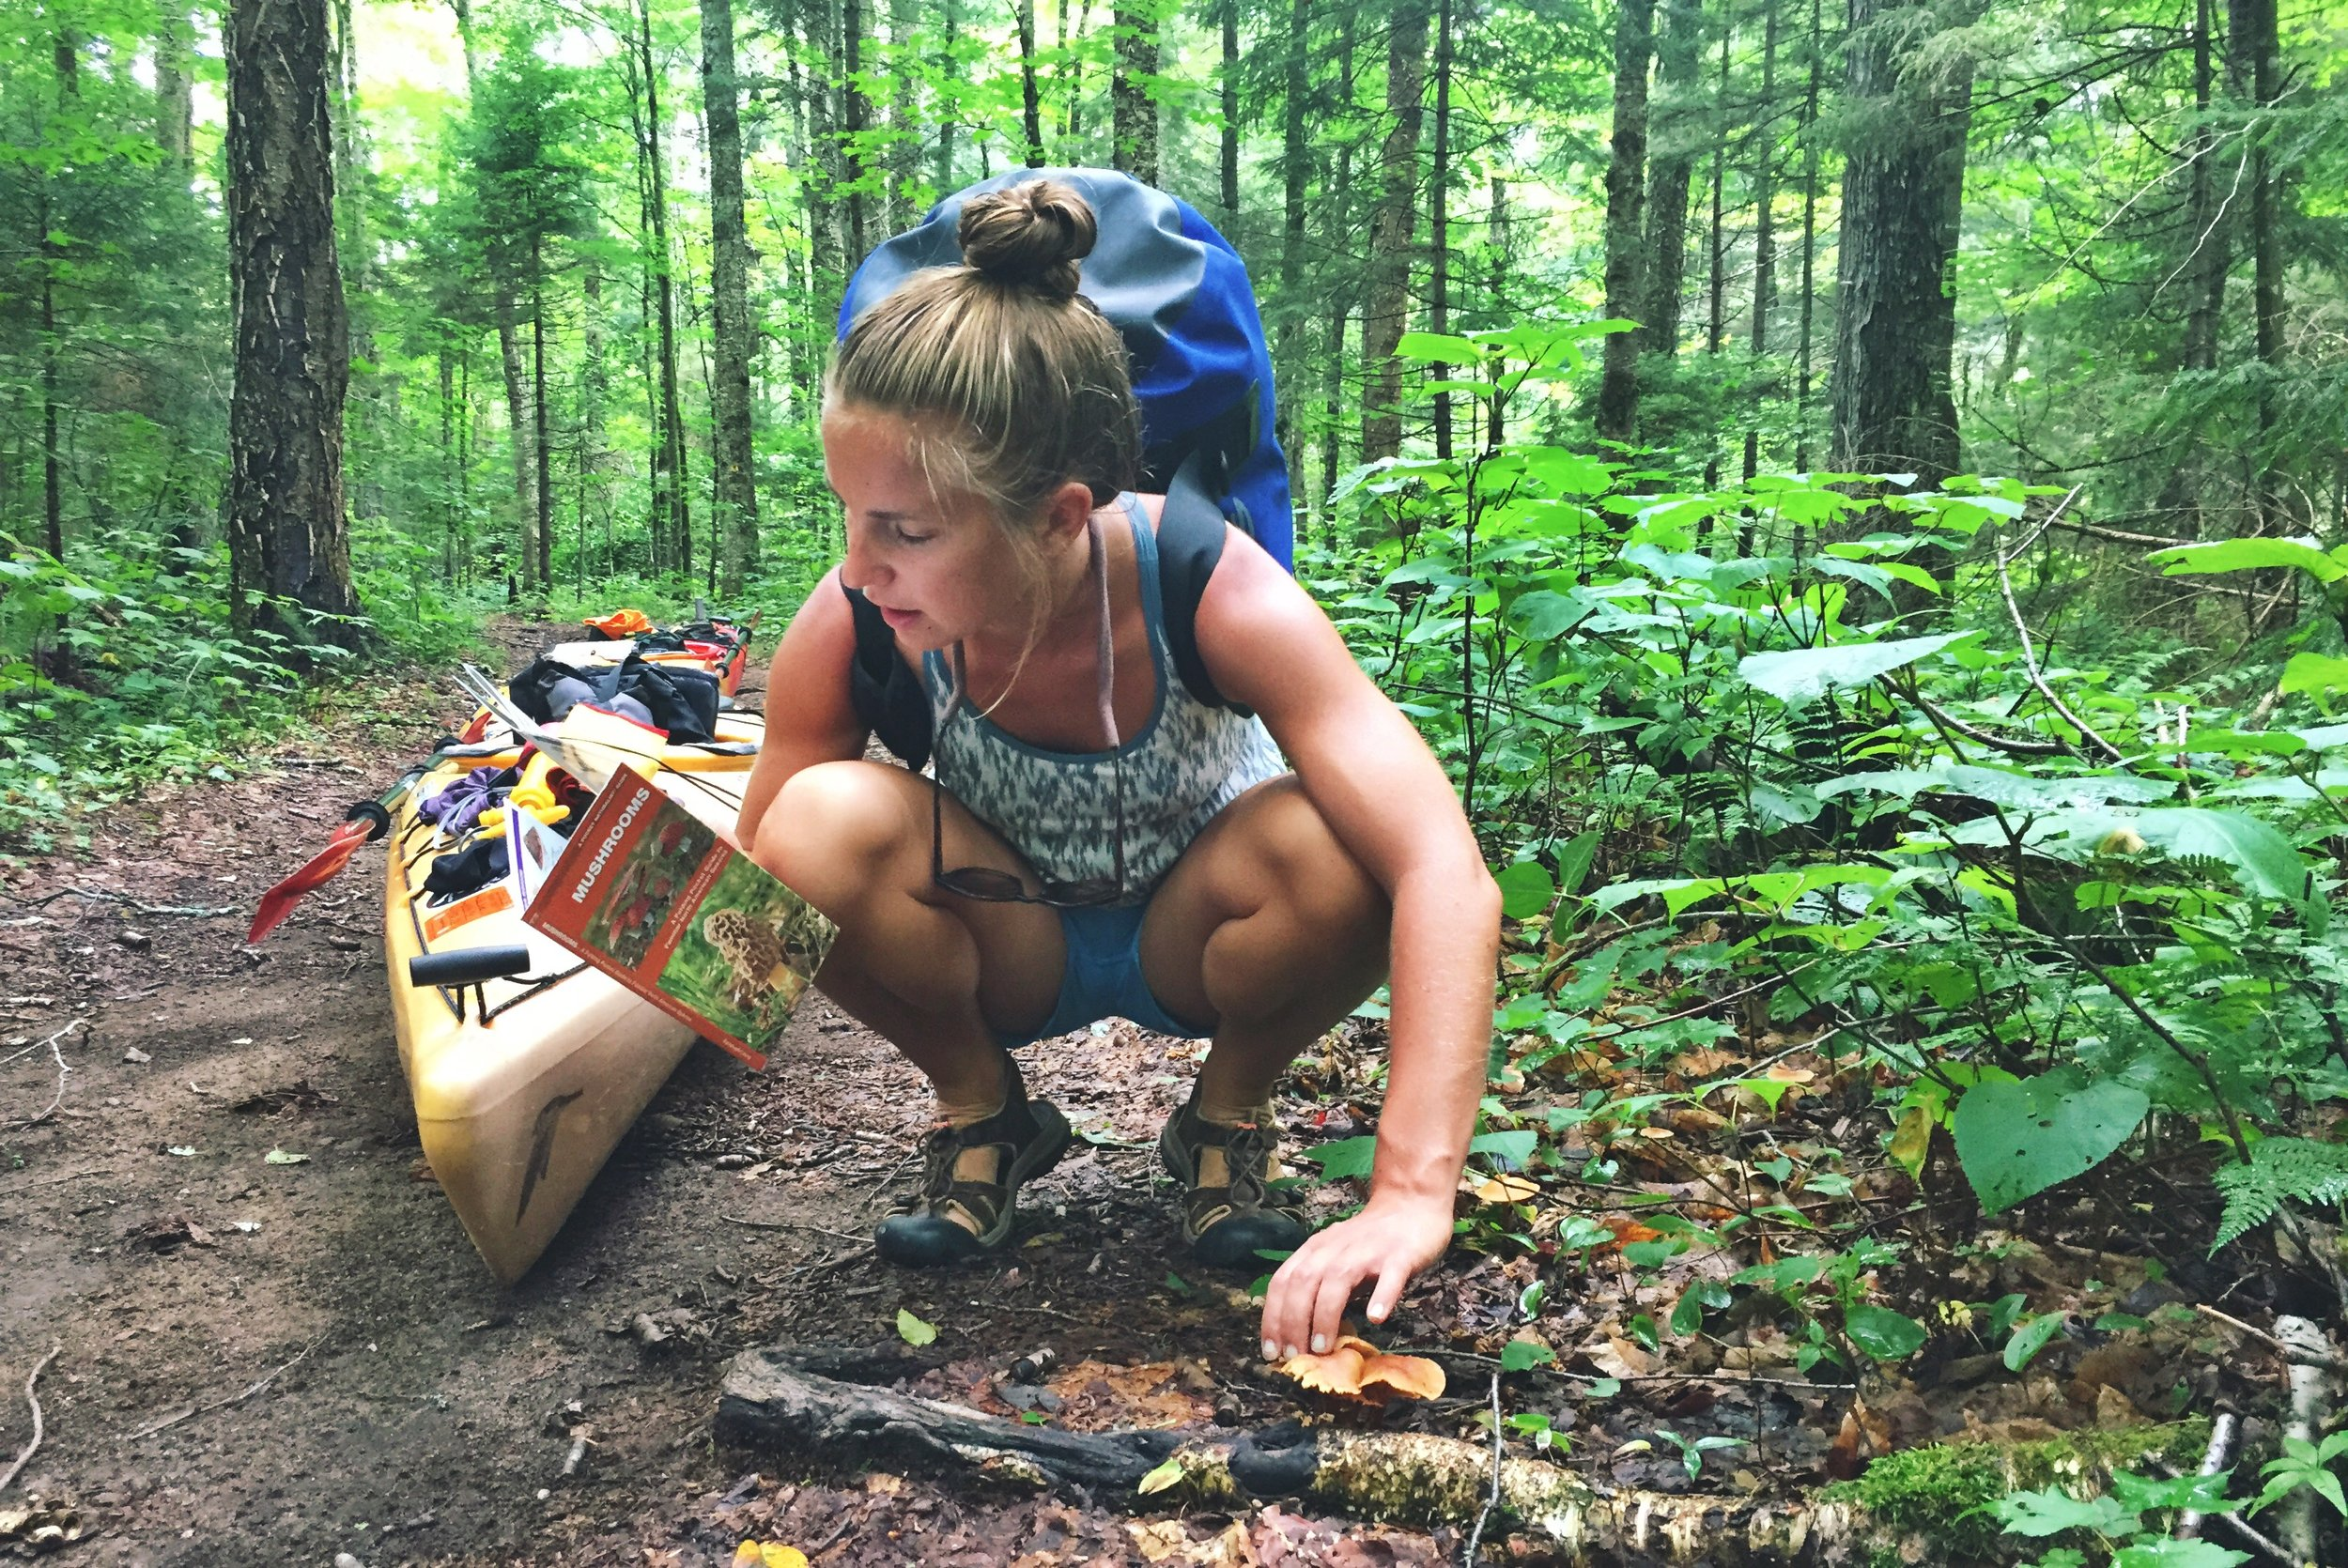 There have been many different kinds of mushrooms in these Adirondack forest.